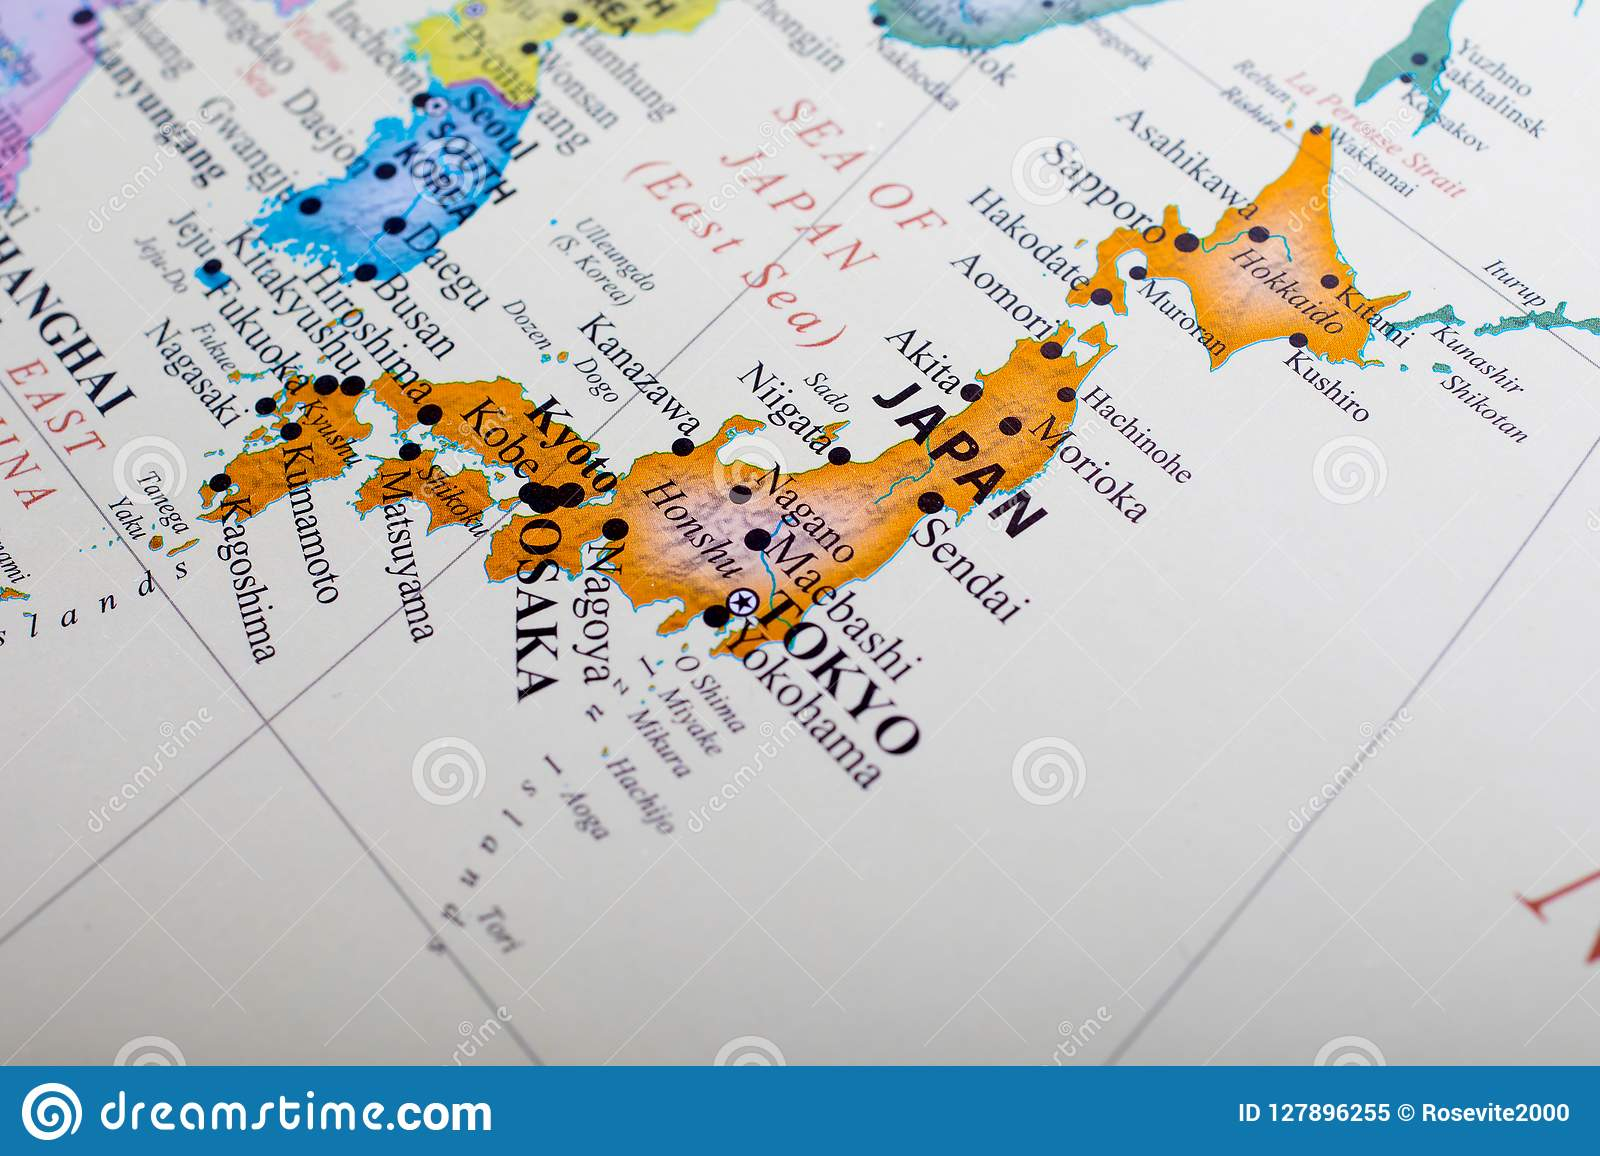 Map Of Asia And Japan.Map Focus On Japan Stock Image Image Of Osaka World 127896255